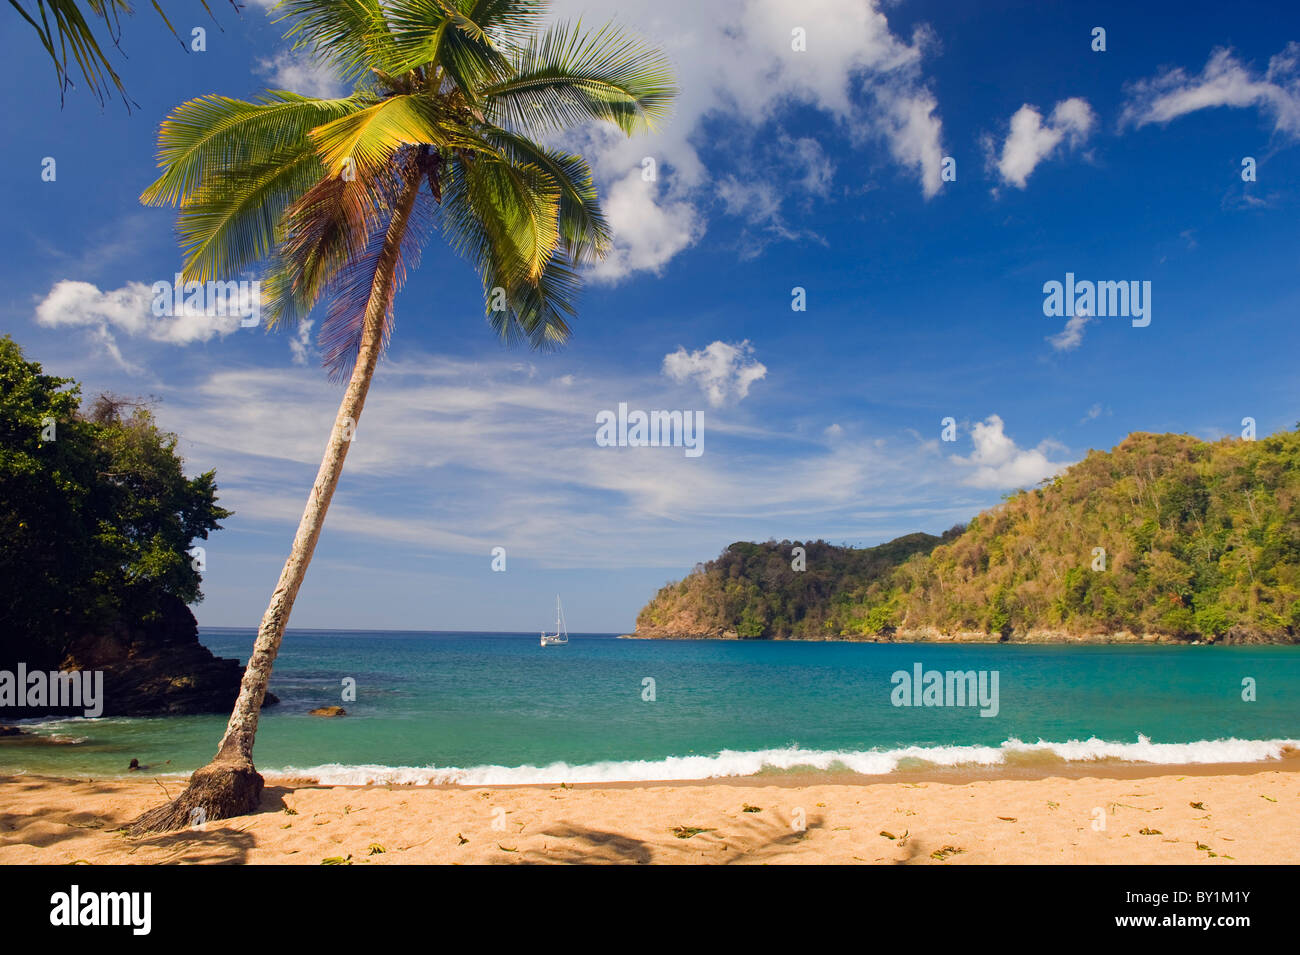 The Caribbean, Trinidad and Tobago, Tobago Island, Englishmans Bay - Stock Image